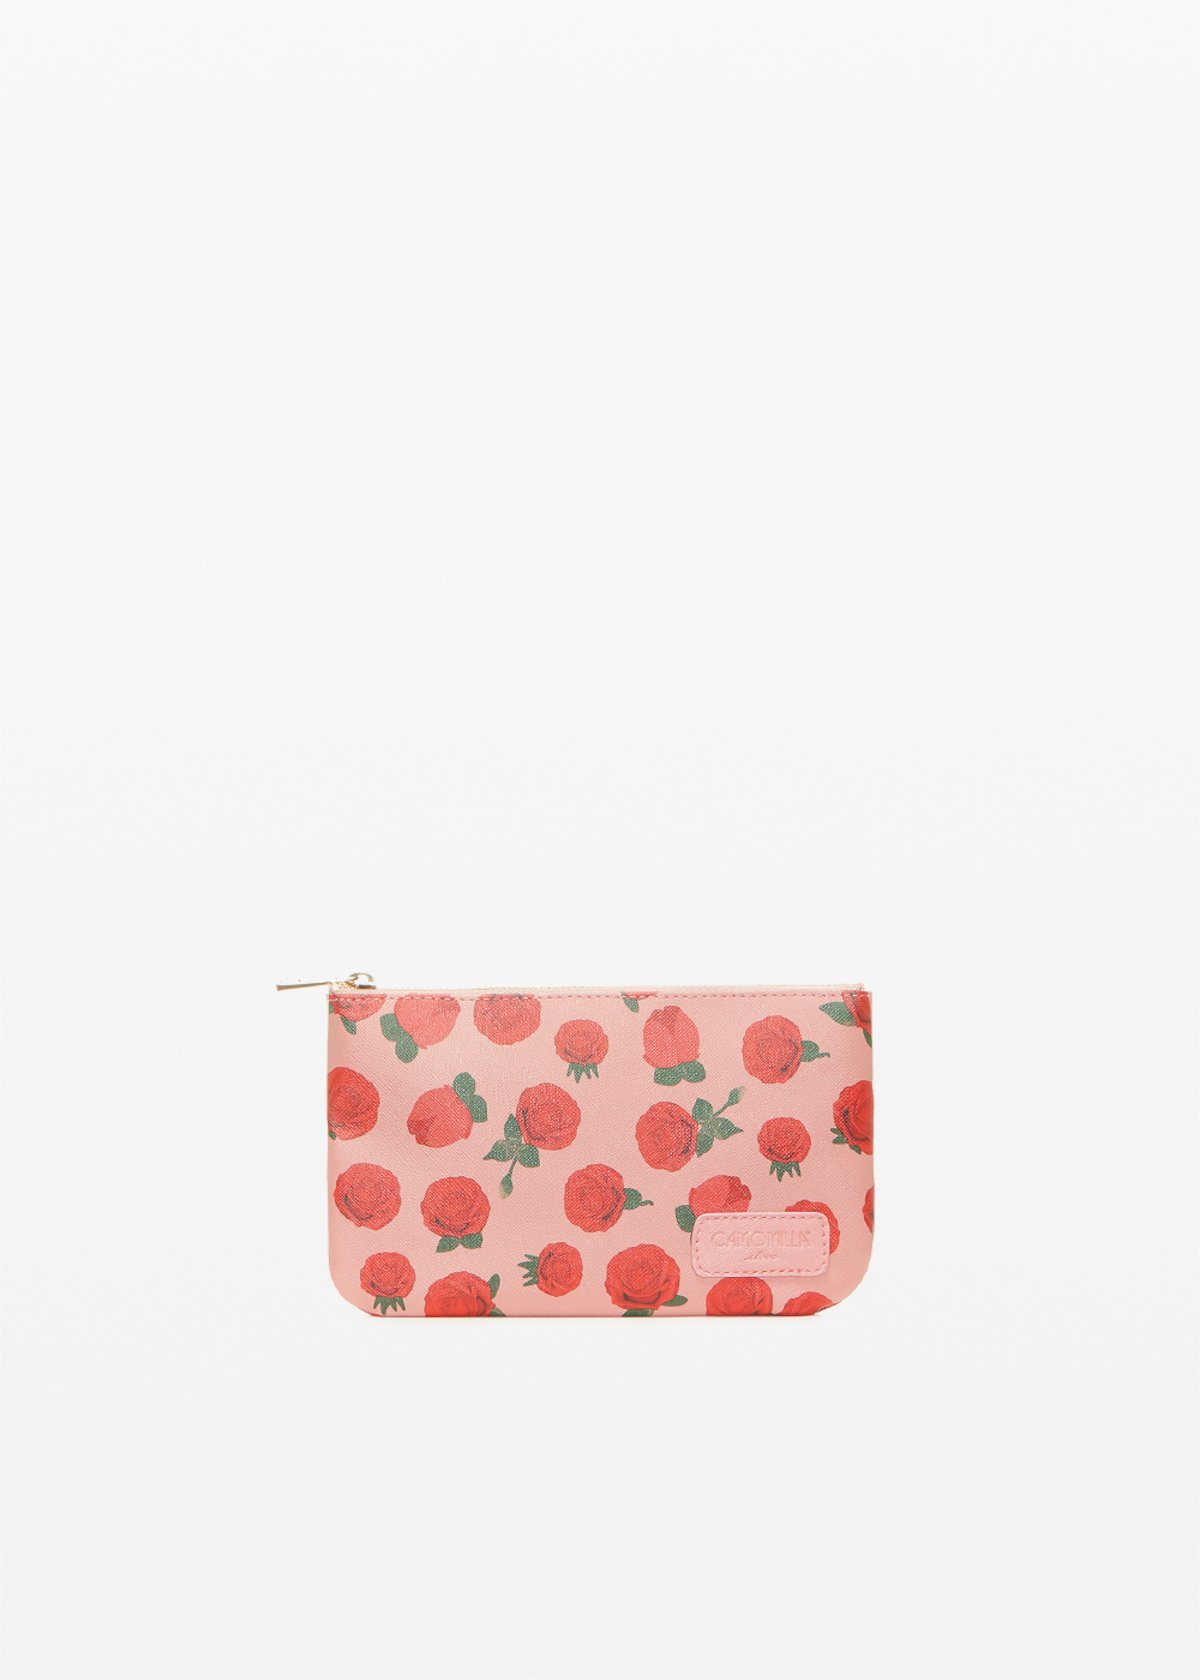 Faux leather Tonga Ros6 clutch with roses print - Calcite Fantasia - Woman